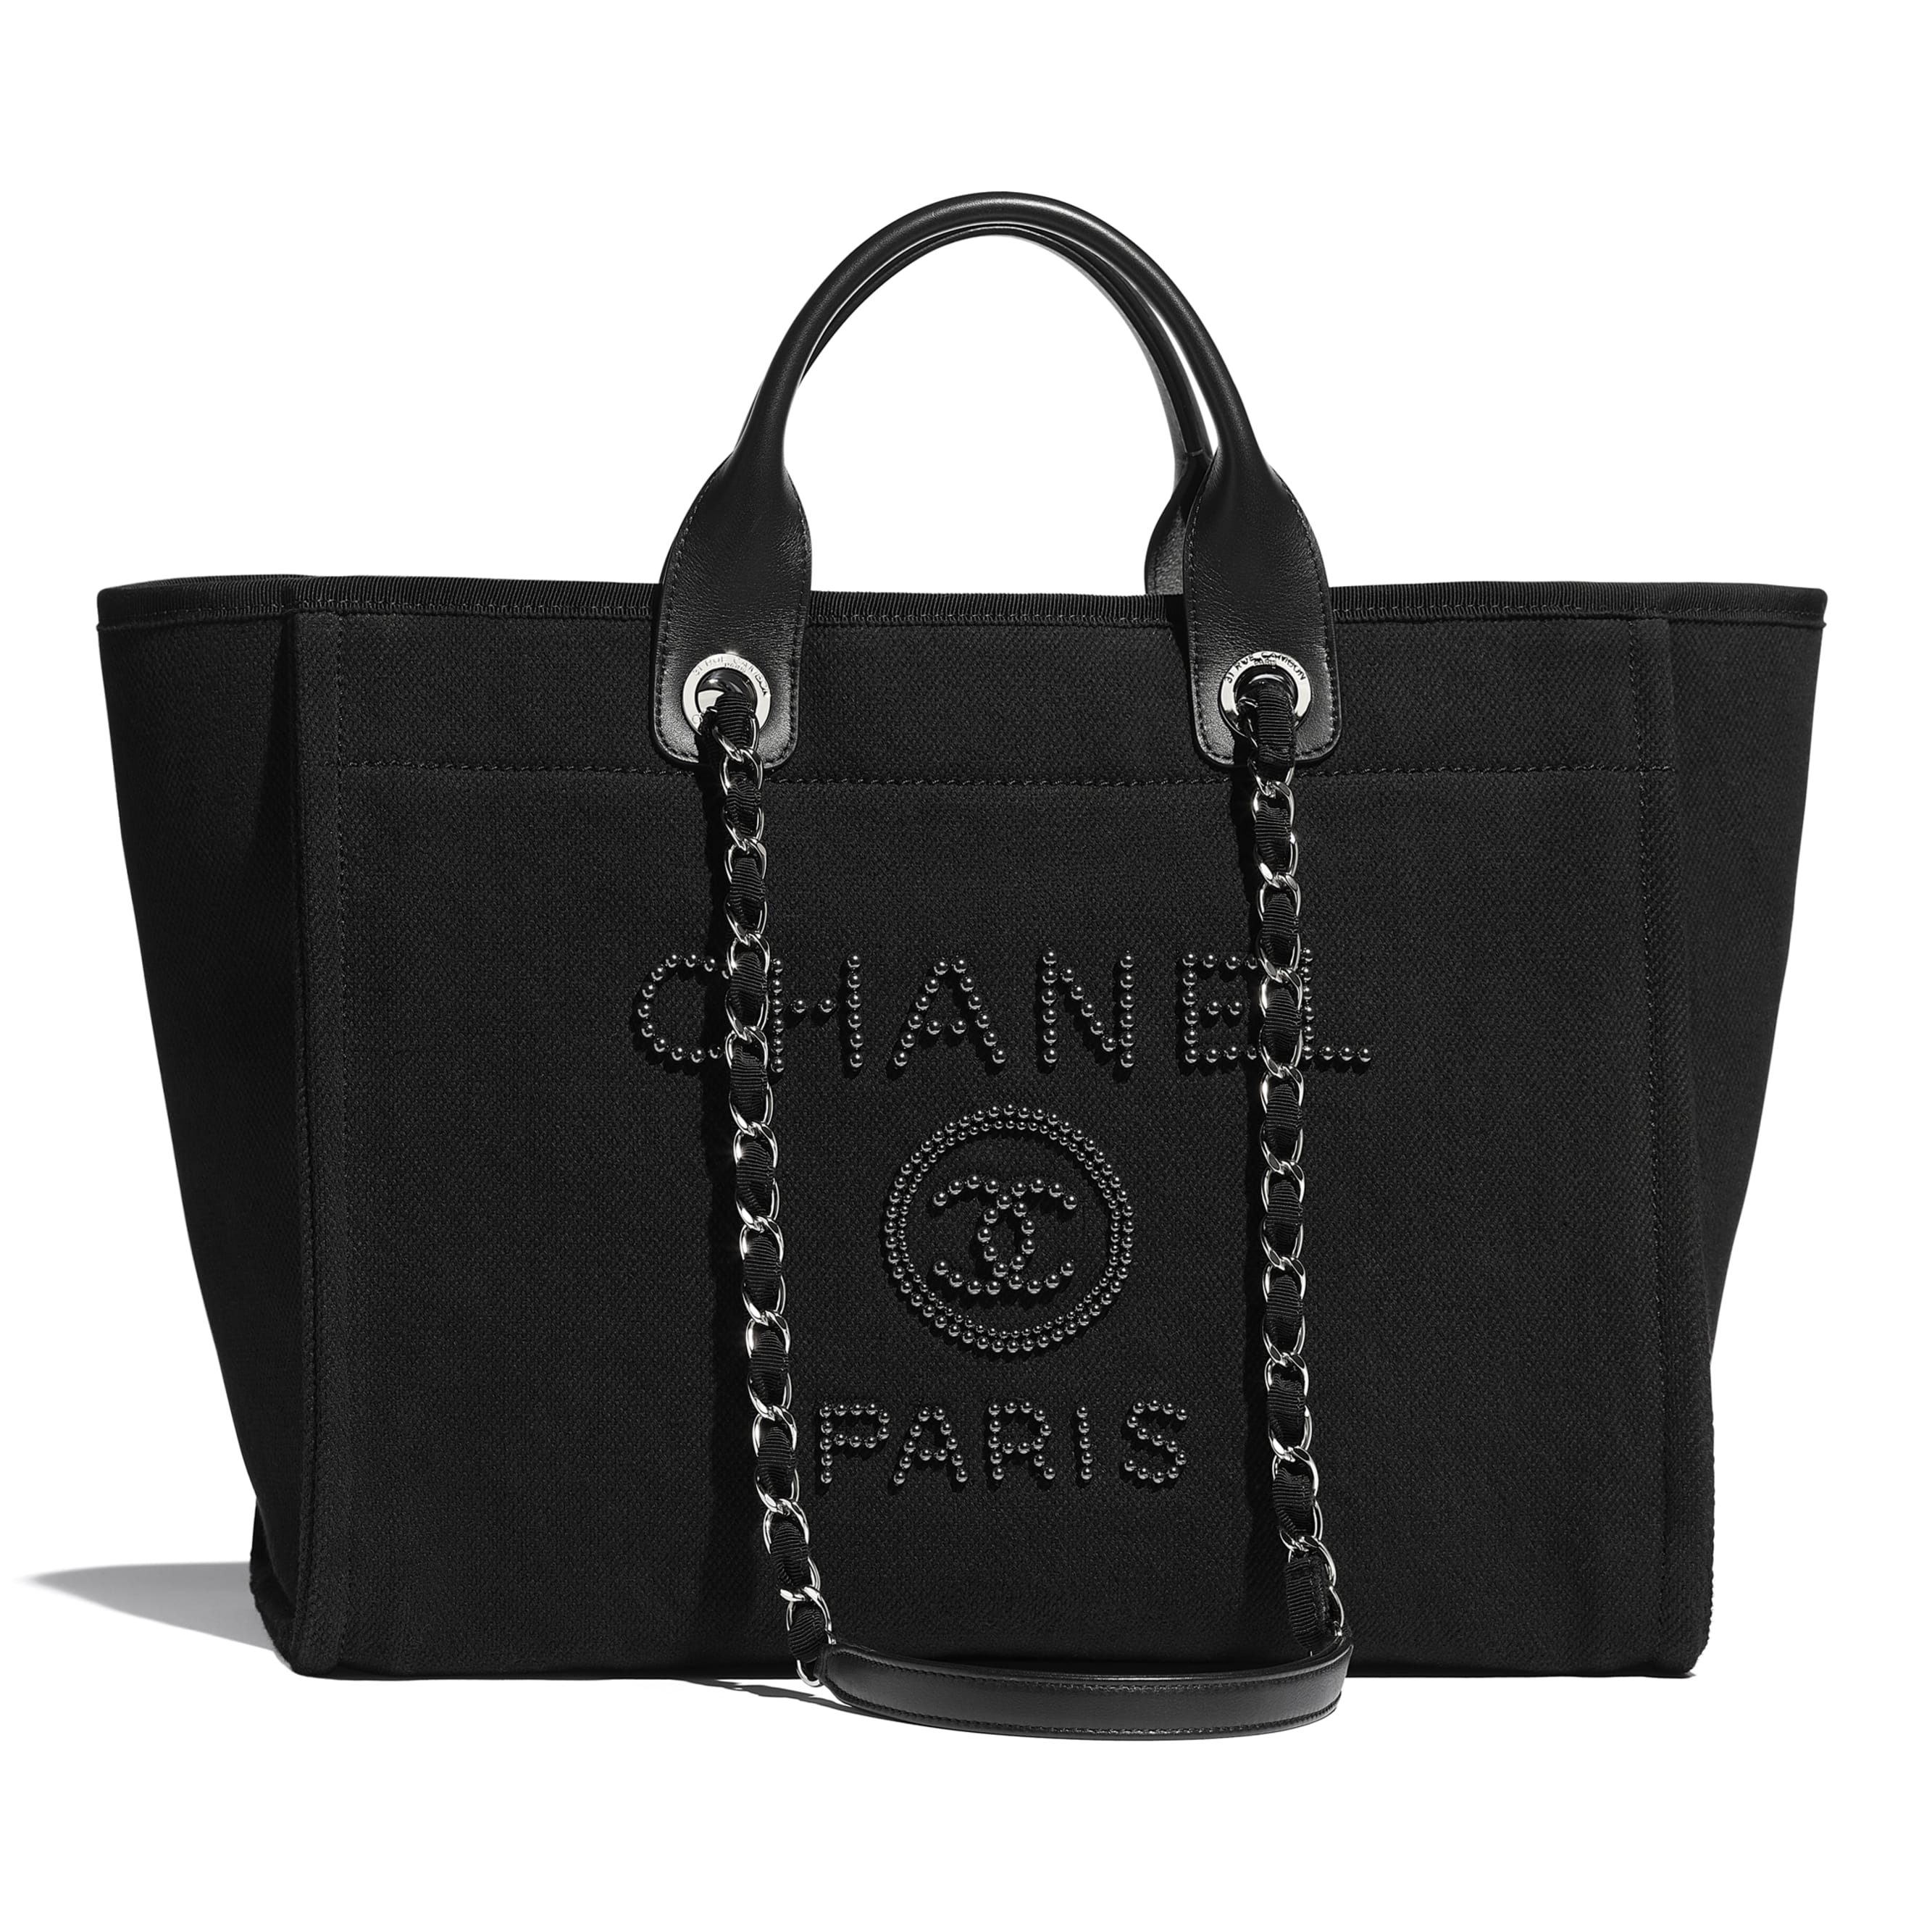 Large Tote - Black - Mixed Fibers, Imitation Pearls, Silver-Tone Metal - CHANEL - Default view - see standard sized version